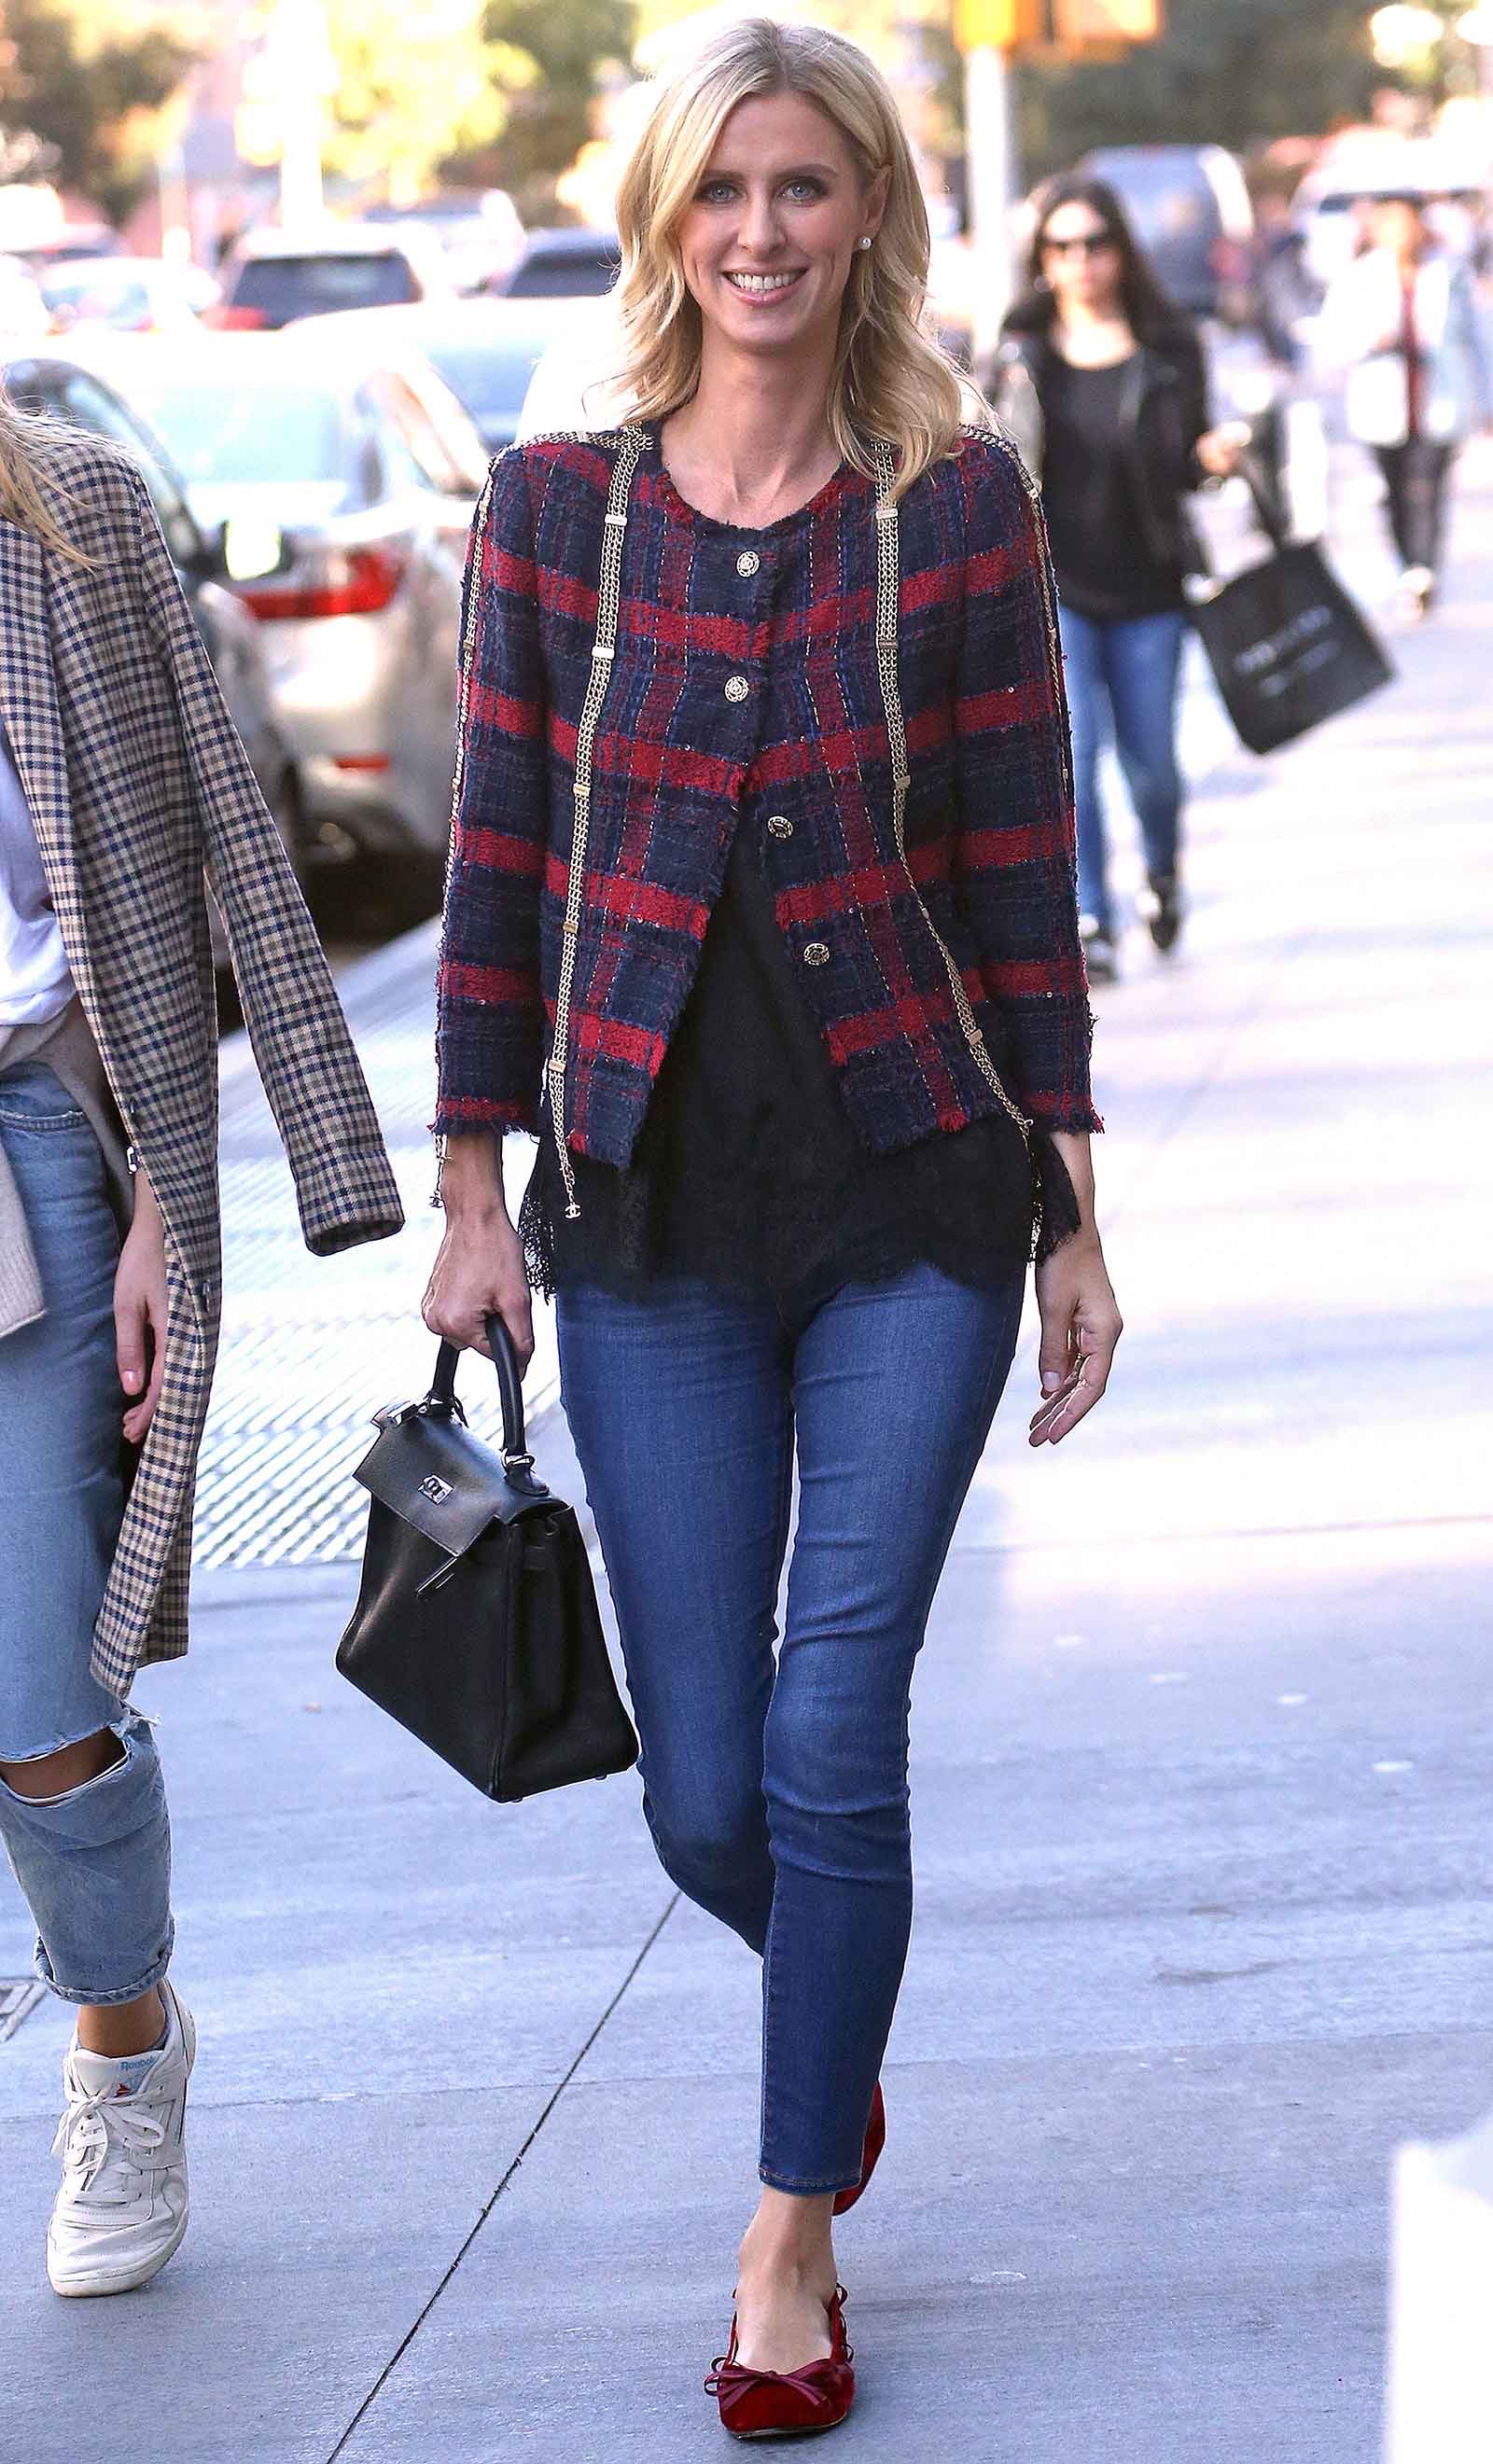 Nicky Hilton's Chanel tweed jacket is perfect for winter!